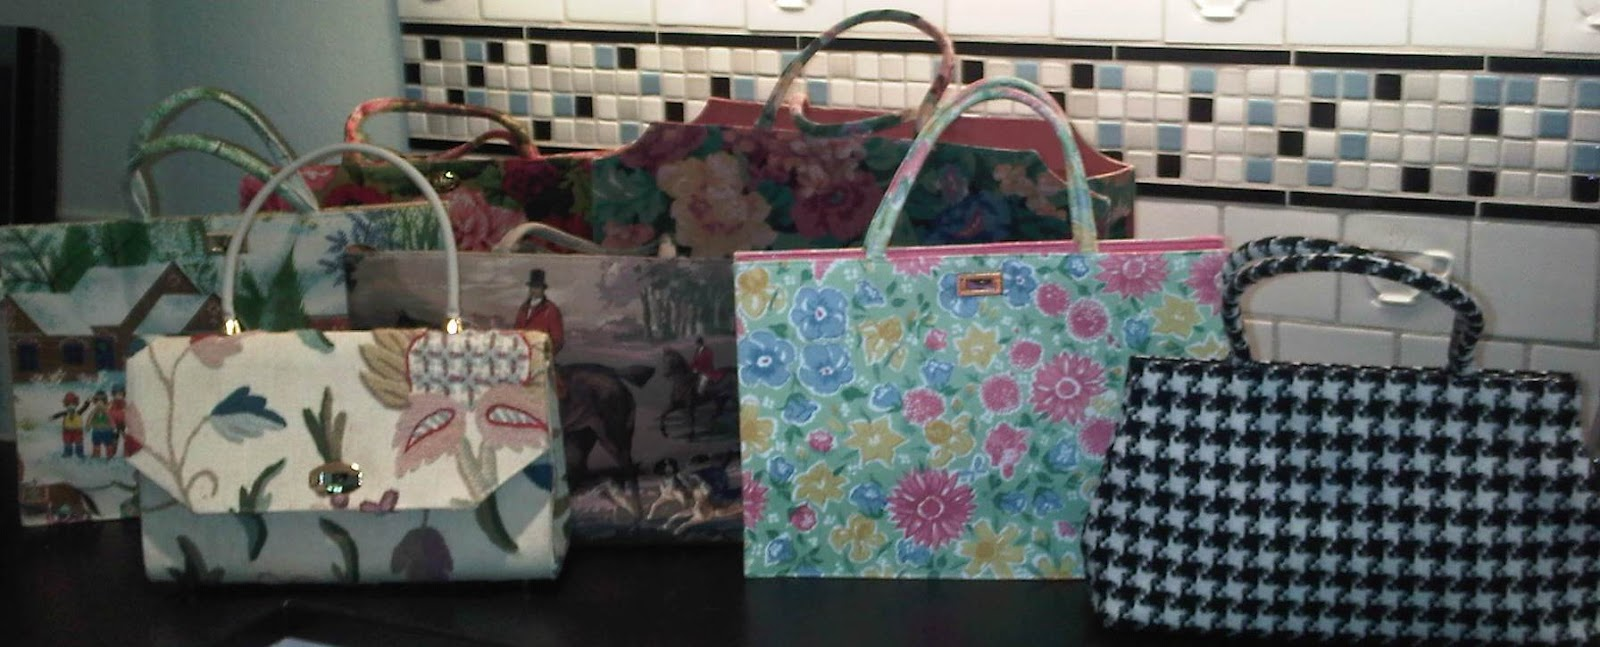 e78e69cbcb37 So what s your favorite style of handbag  And do you change weekly like I  do  Or are you a